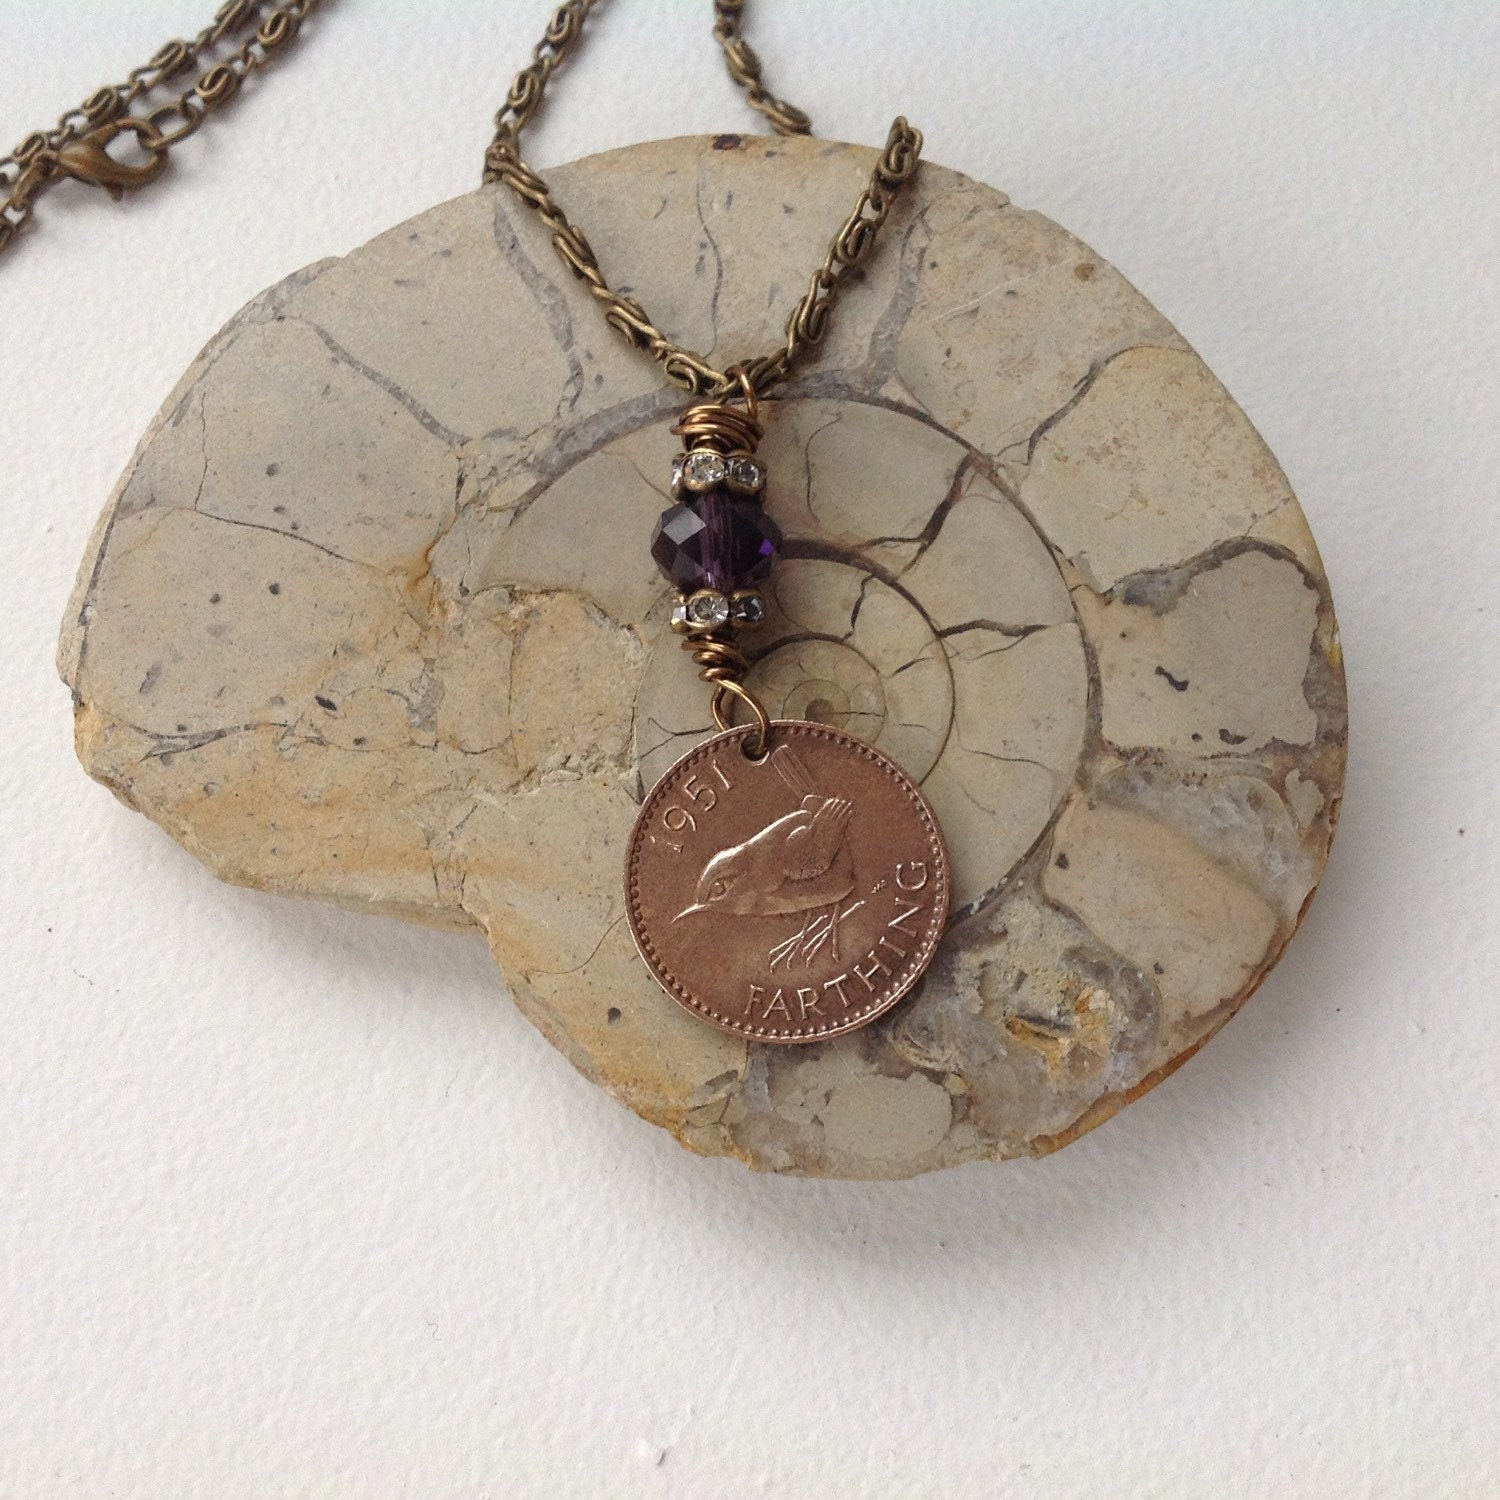 1951 farthing necklace coin jewelry wren by quirkygirlworkshop